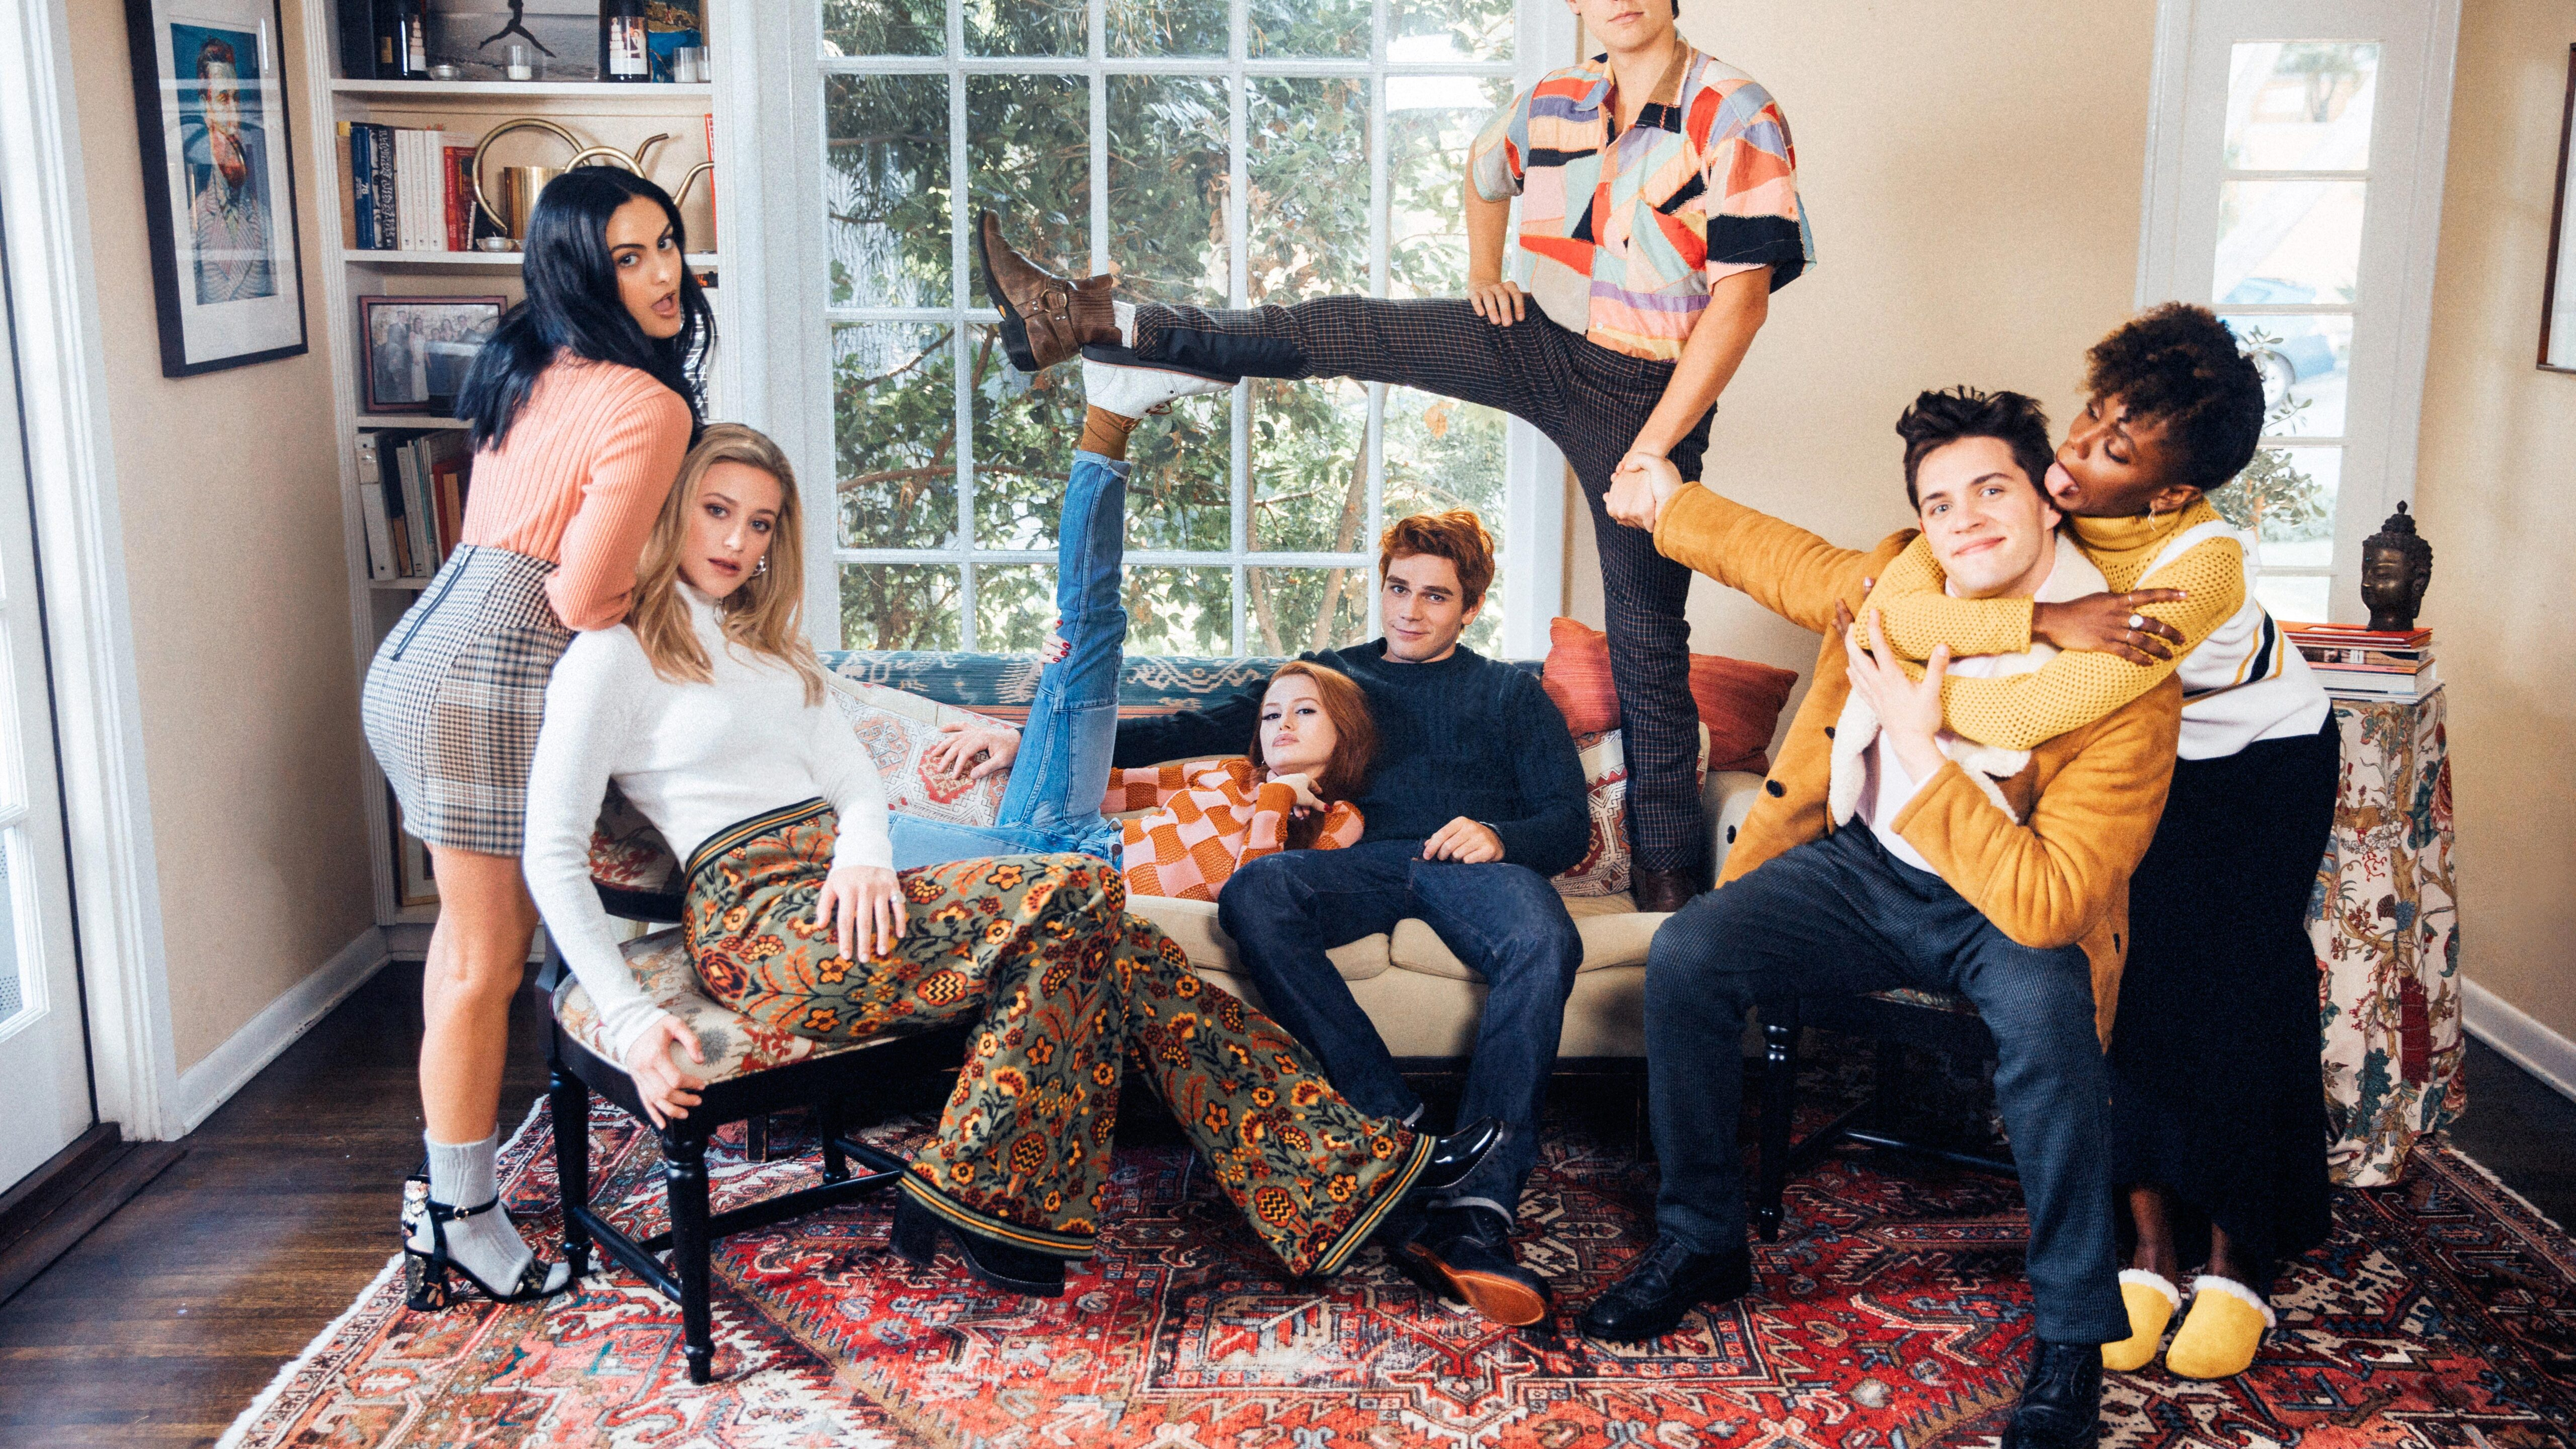 5120x2880 riverdale season 2 cast photoshoot 5k 5k hd 4k - Tv series wallpaper 4k ...